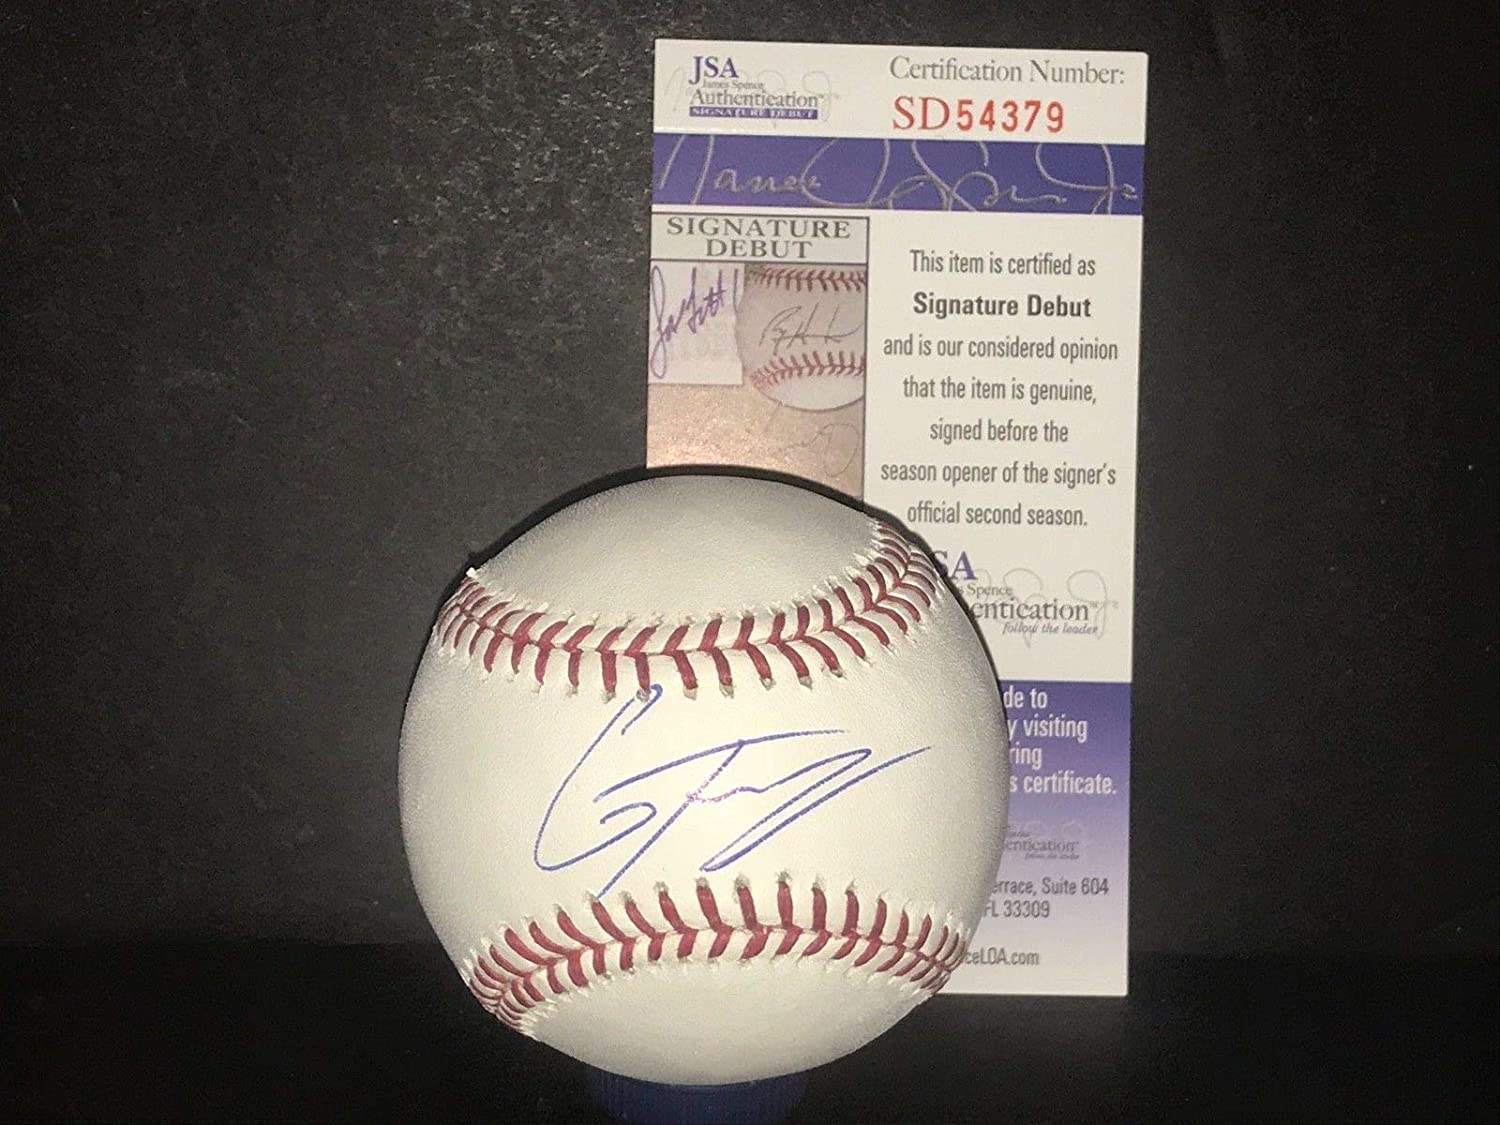 Gleyber Torres New York Yankees Autographed Signed MLB Baseball JSA SIGNATURE DEBUT COA SidsGraphs